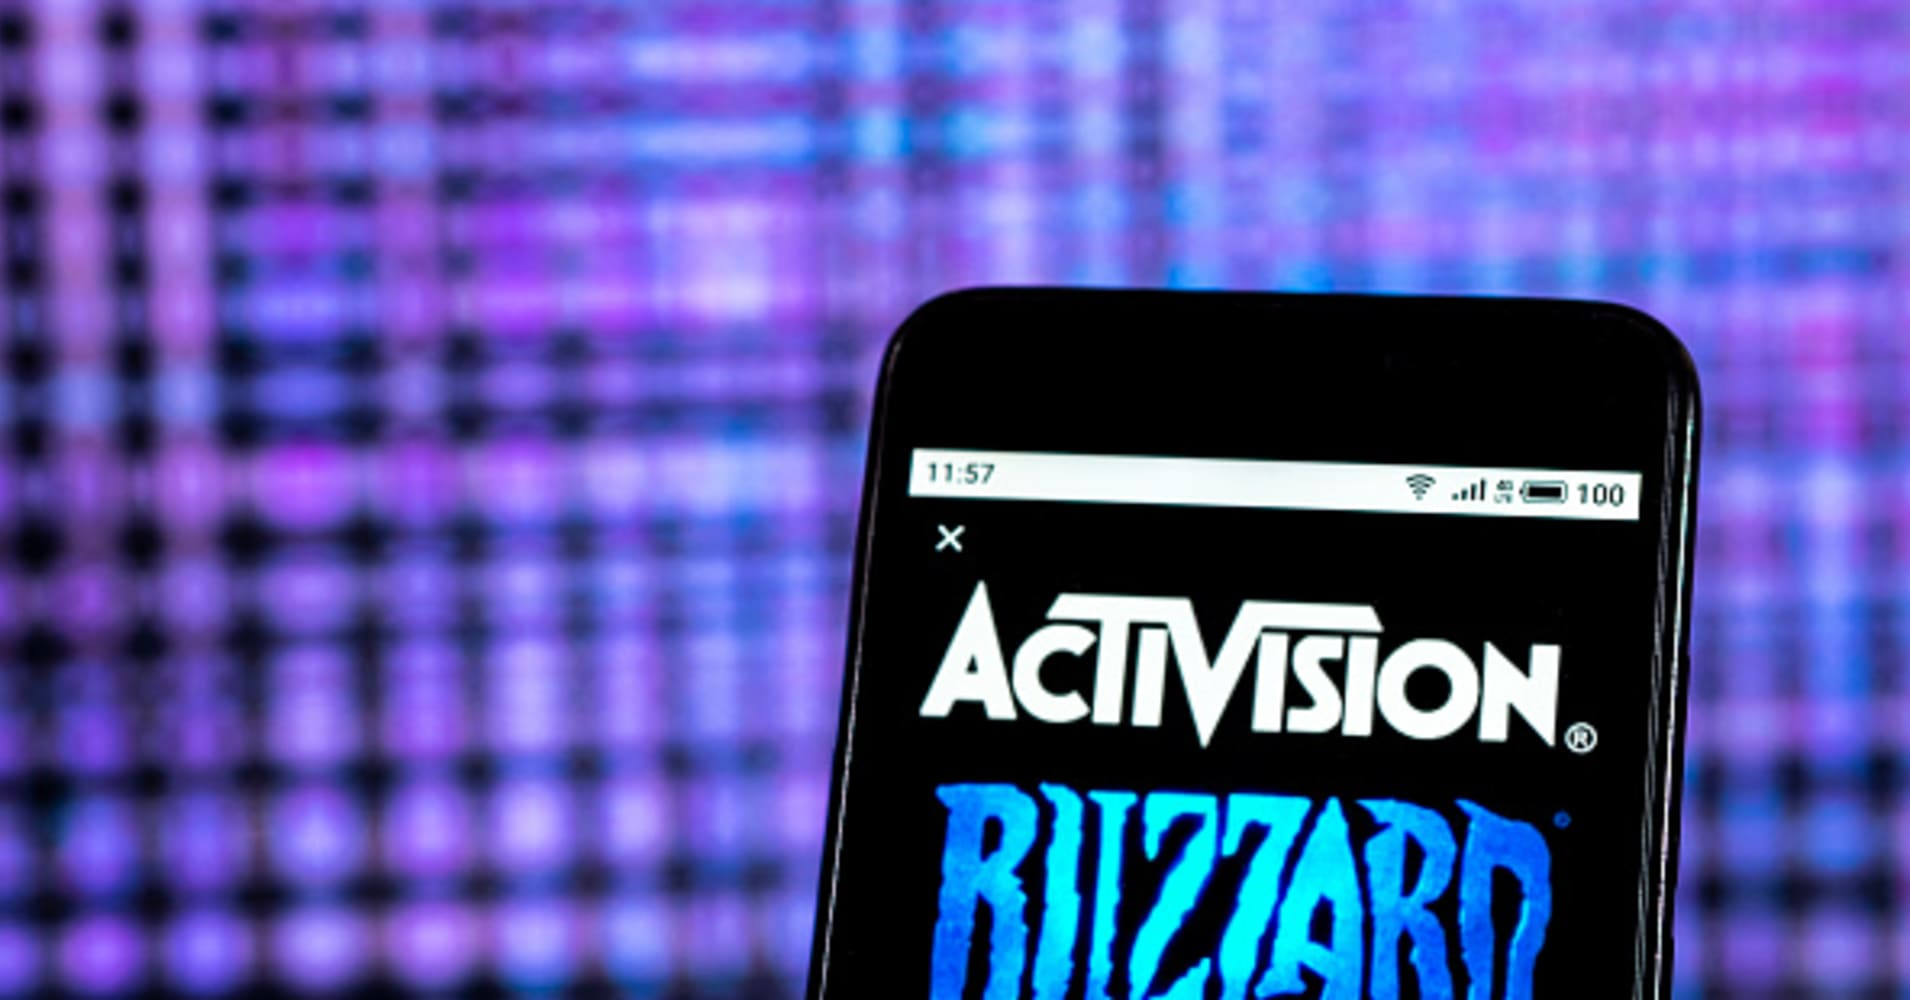 Stocks making the biggest moves after hours: Activision Blizzard, TripAdvisor, Akamai and more